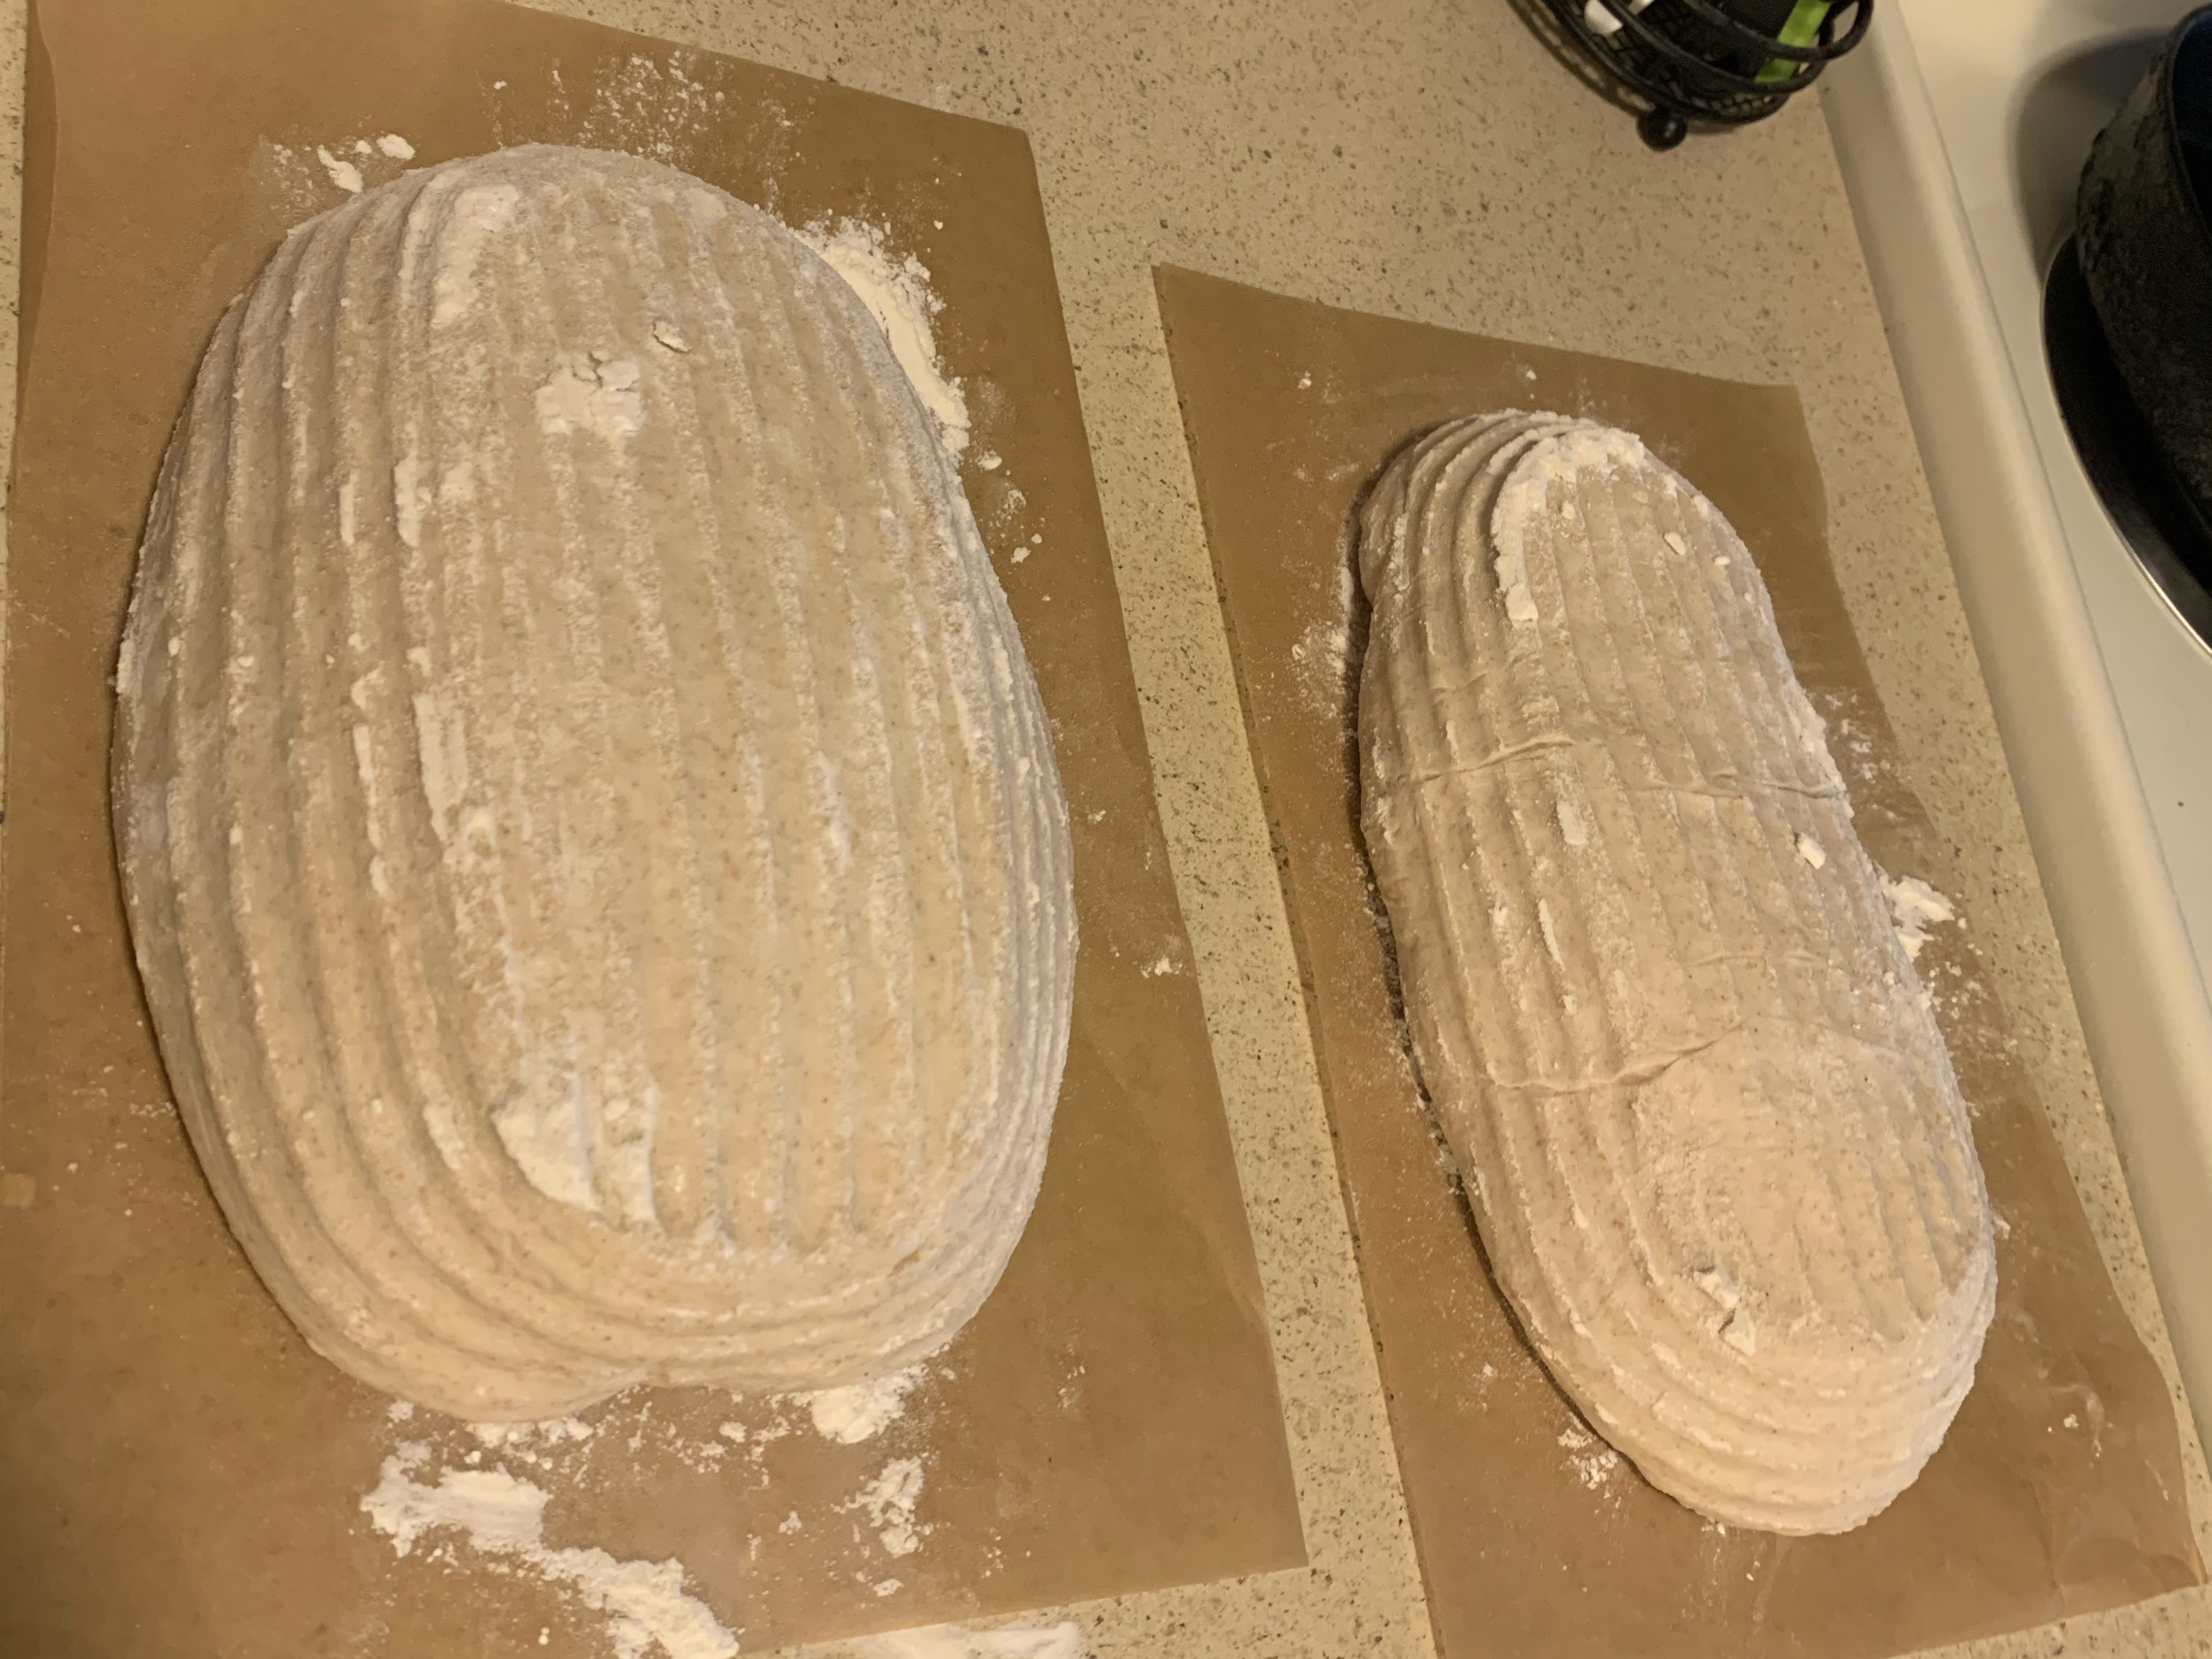 Fully proofed loaves ready to be scored and baked.